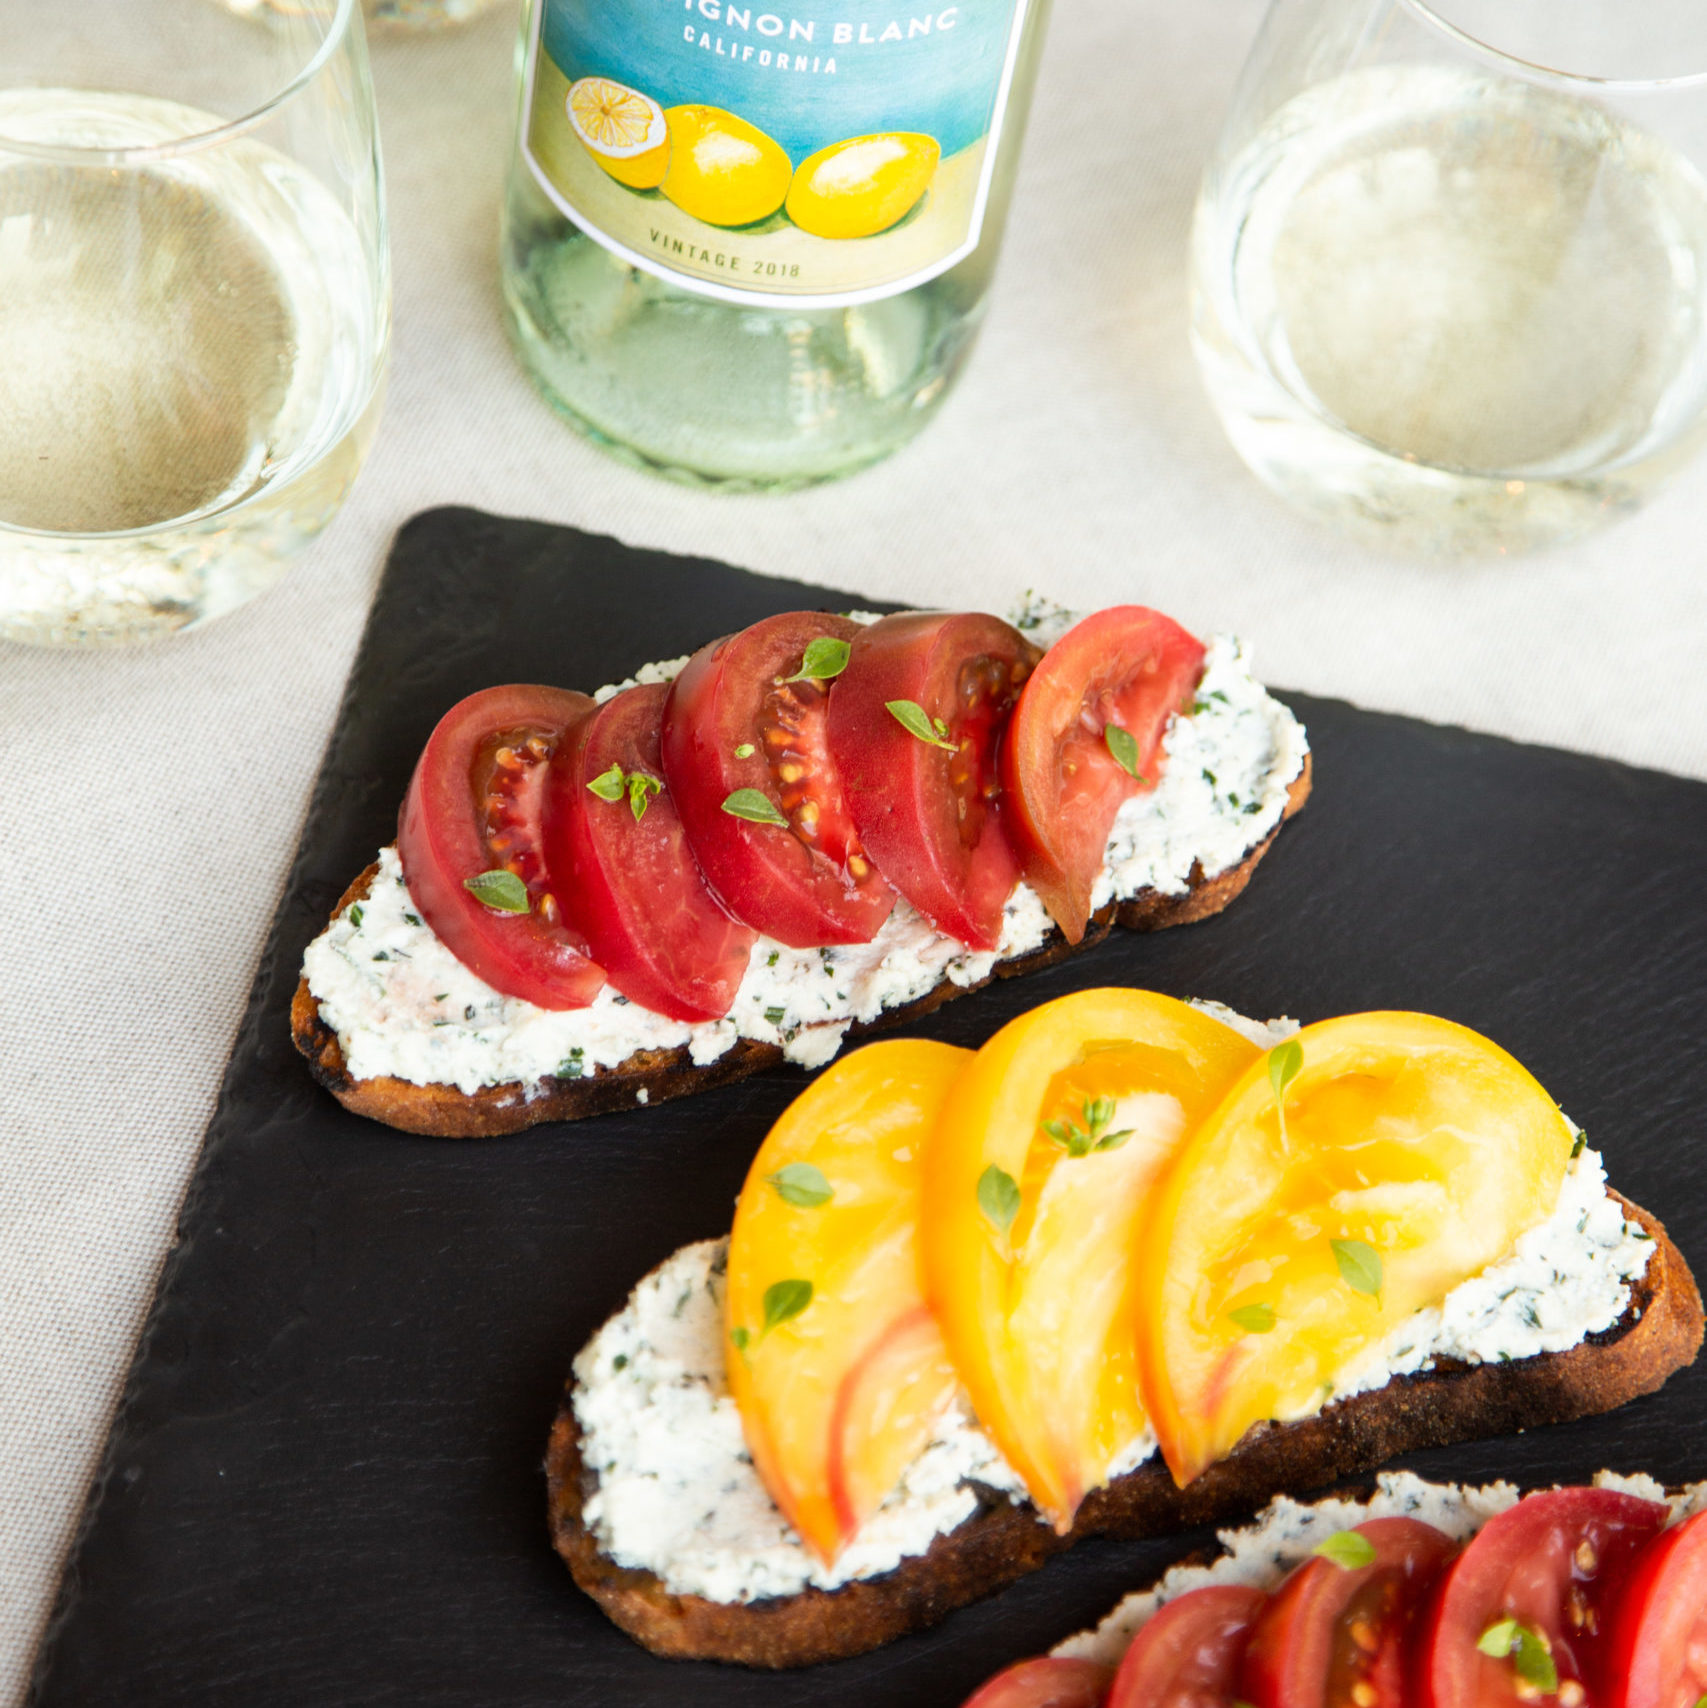 Bruschetta with Herbed Ricotta and Heirloom Tomatoes